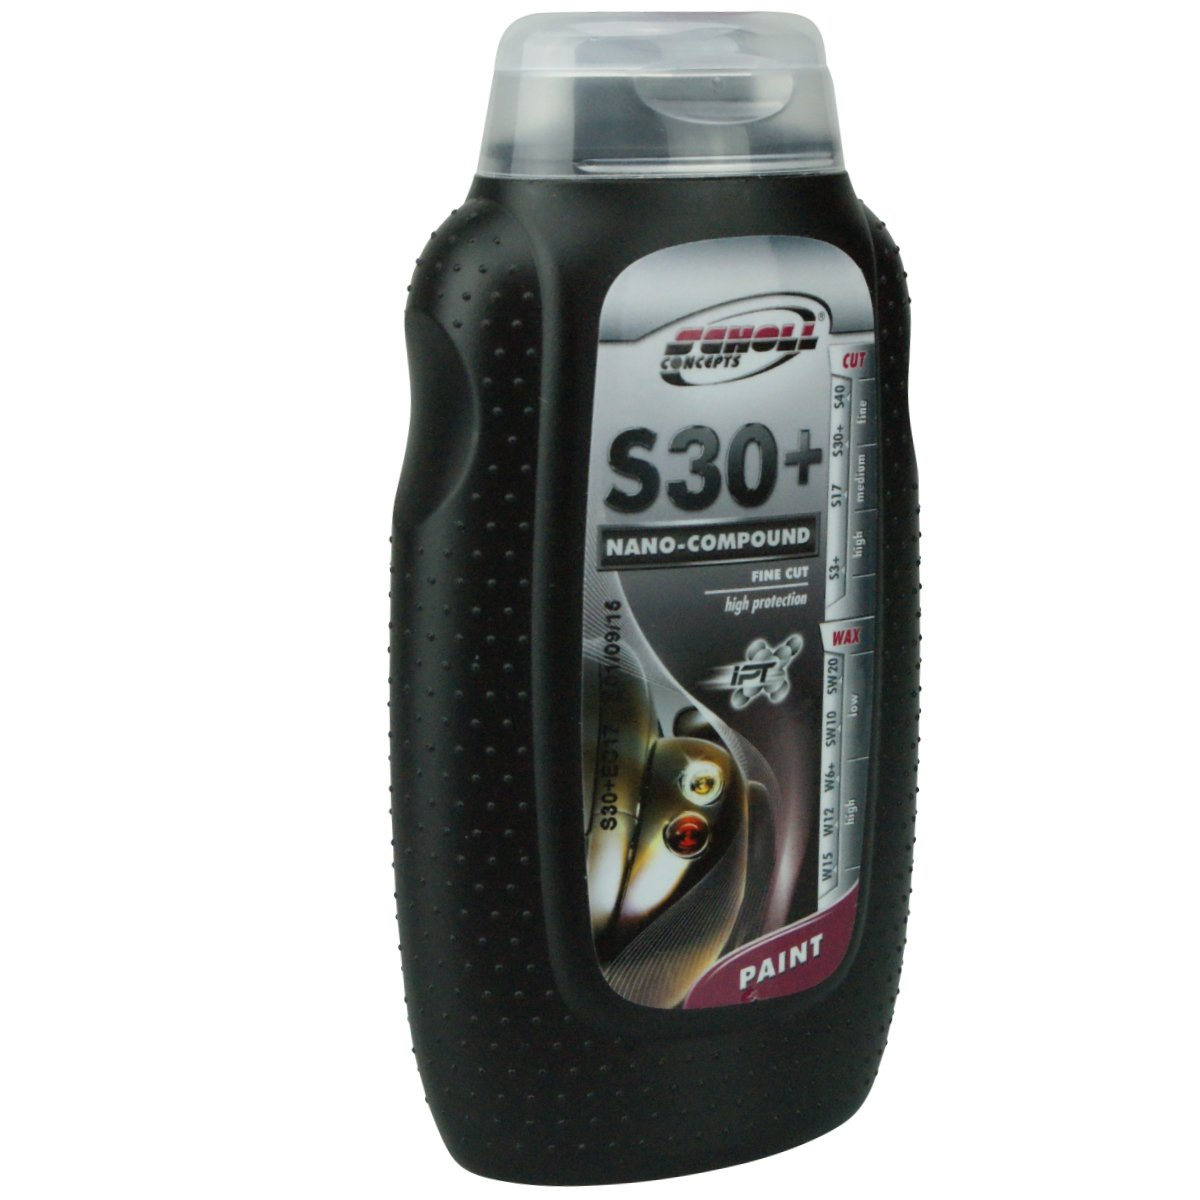 Scholl Concepts S30+ Nano Compound Fine Cut 250g